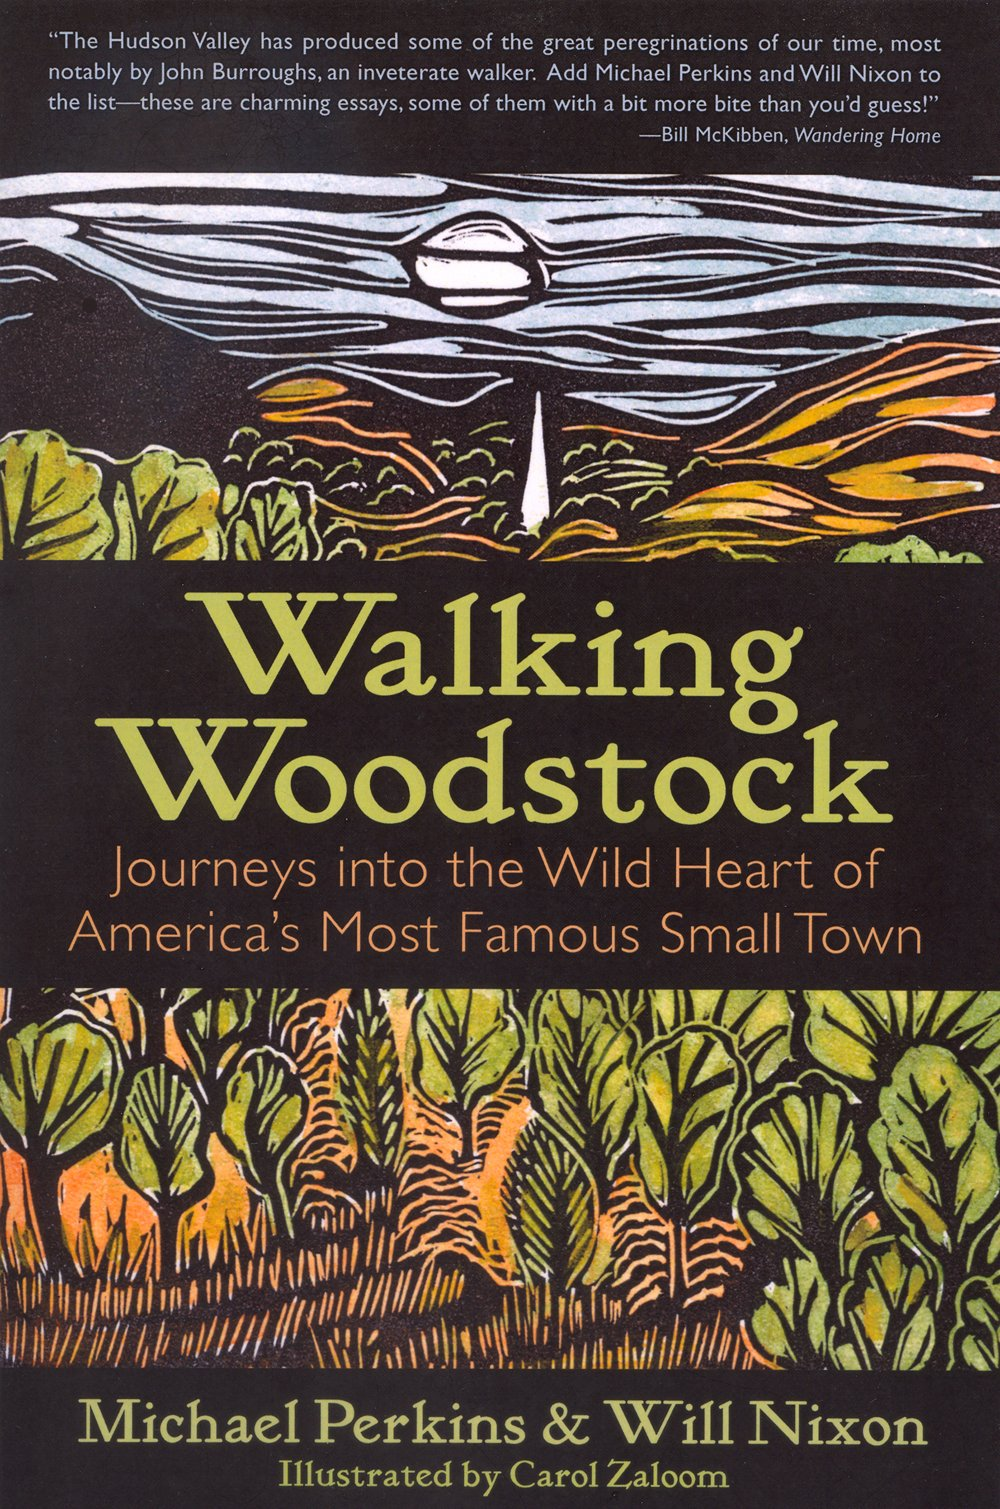 walking woodstock journeys into the wild heart of america s most walking woodstock journeys into the wild heart of america s most famous small town michael perkins will nixon carol zaloom 9781935534396 com